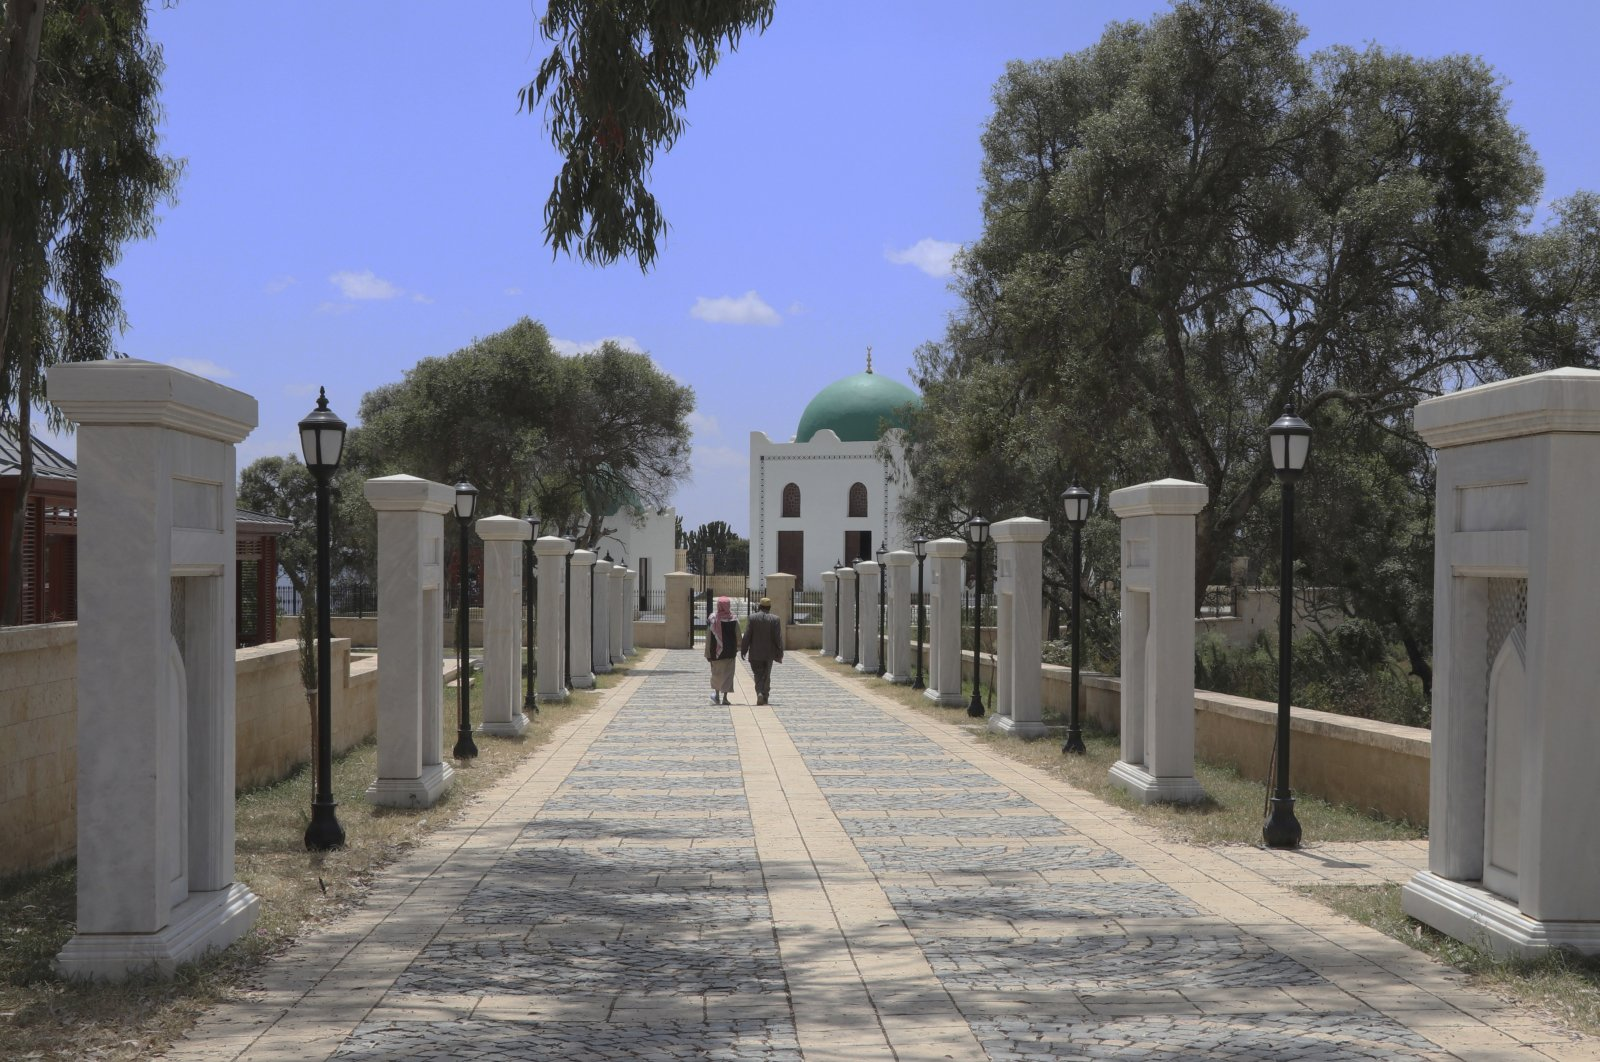 Al-Nejashi tomb, located in northern Ethiopia and restored by Turkey's state-run Turkish Cooperation and Coordination Agency (TIKA), opens its doors to visitors. (AA Photo)